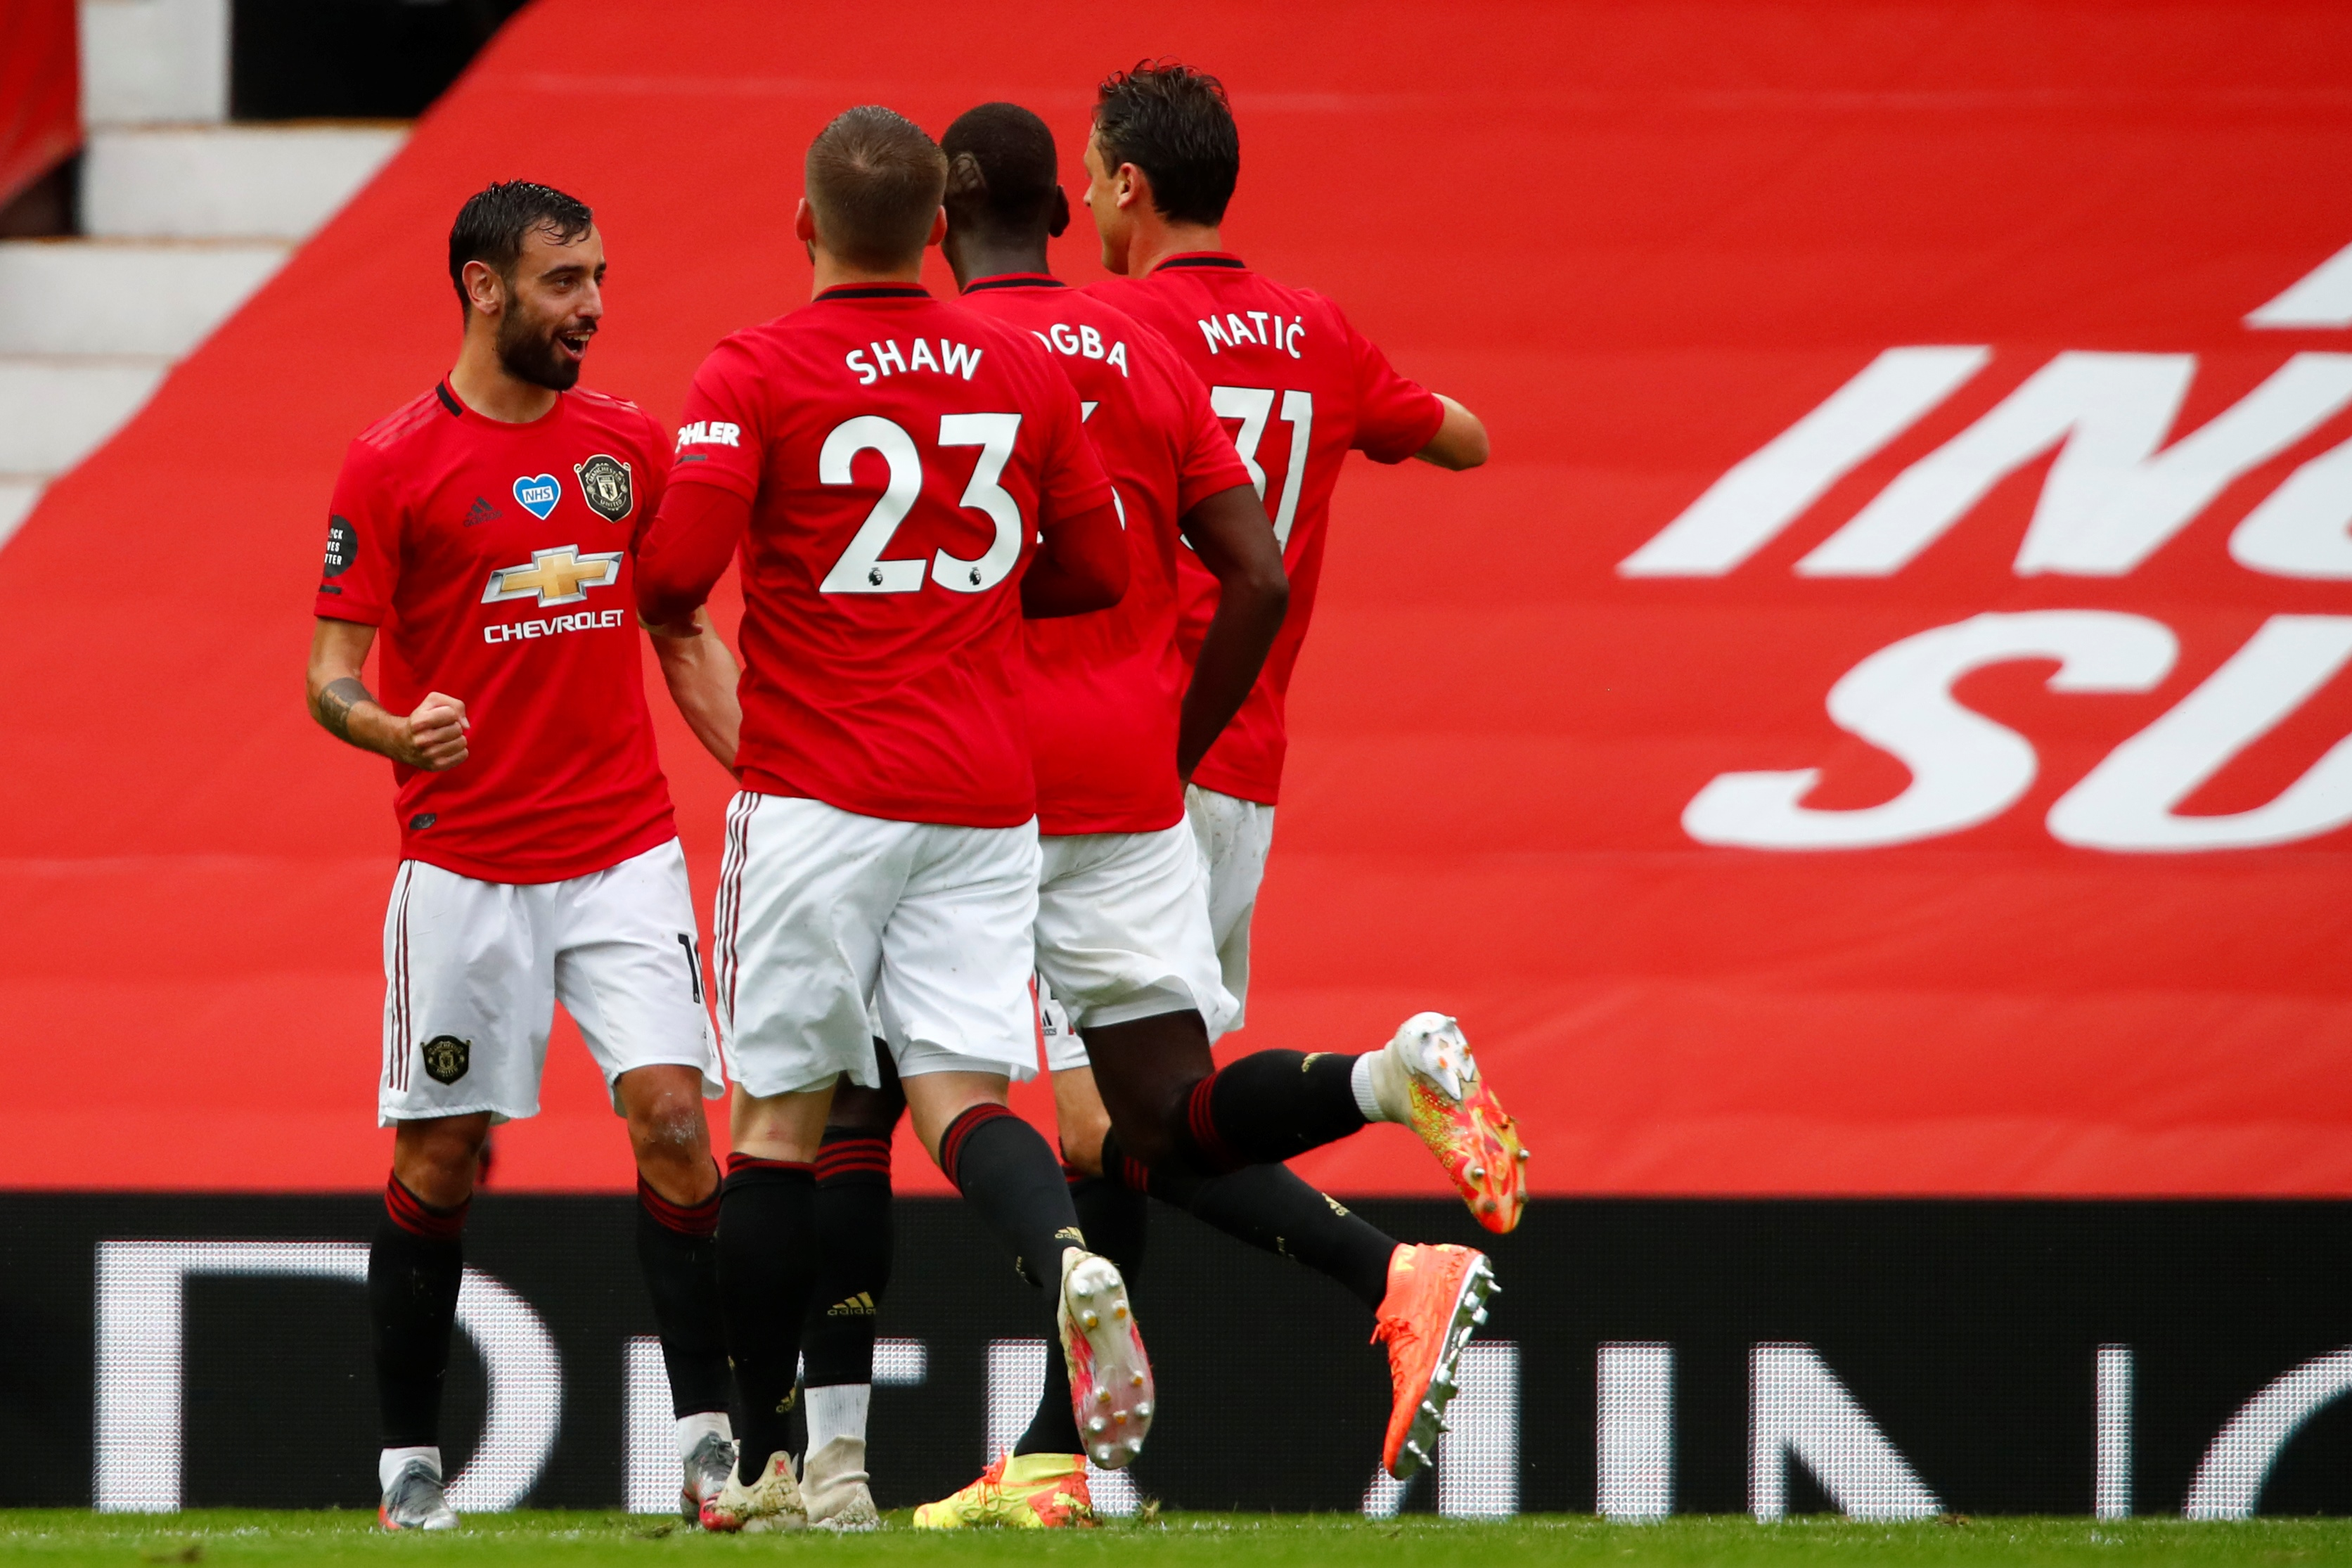 Crystal Palace Vs Manchester United Tactical Preview (Man United players celebrating in the picture)